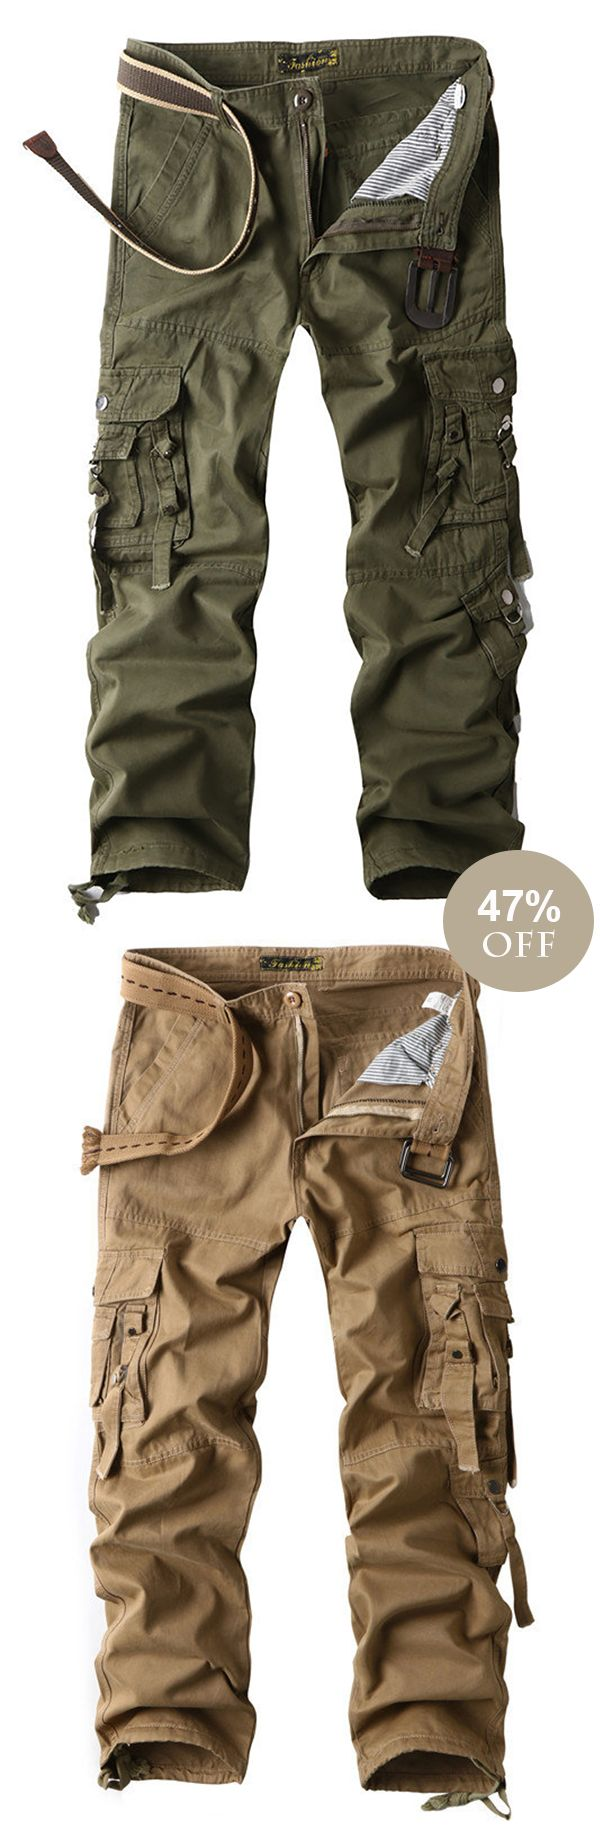 107 Best Comfortable Images On Pinterest Man Women Down Jackets Niion Hipbag Camo Navy Mens Cotton Breathable Cargo Pants Multi Pocket Loose Fit Trousers Outdoor Outdoors